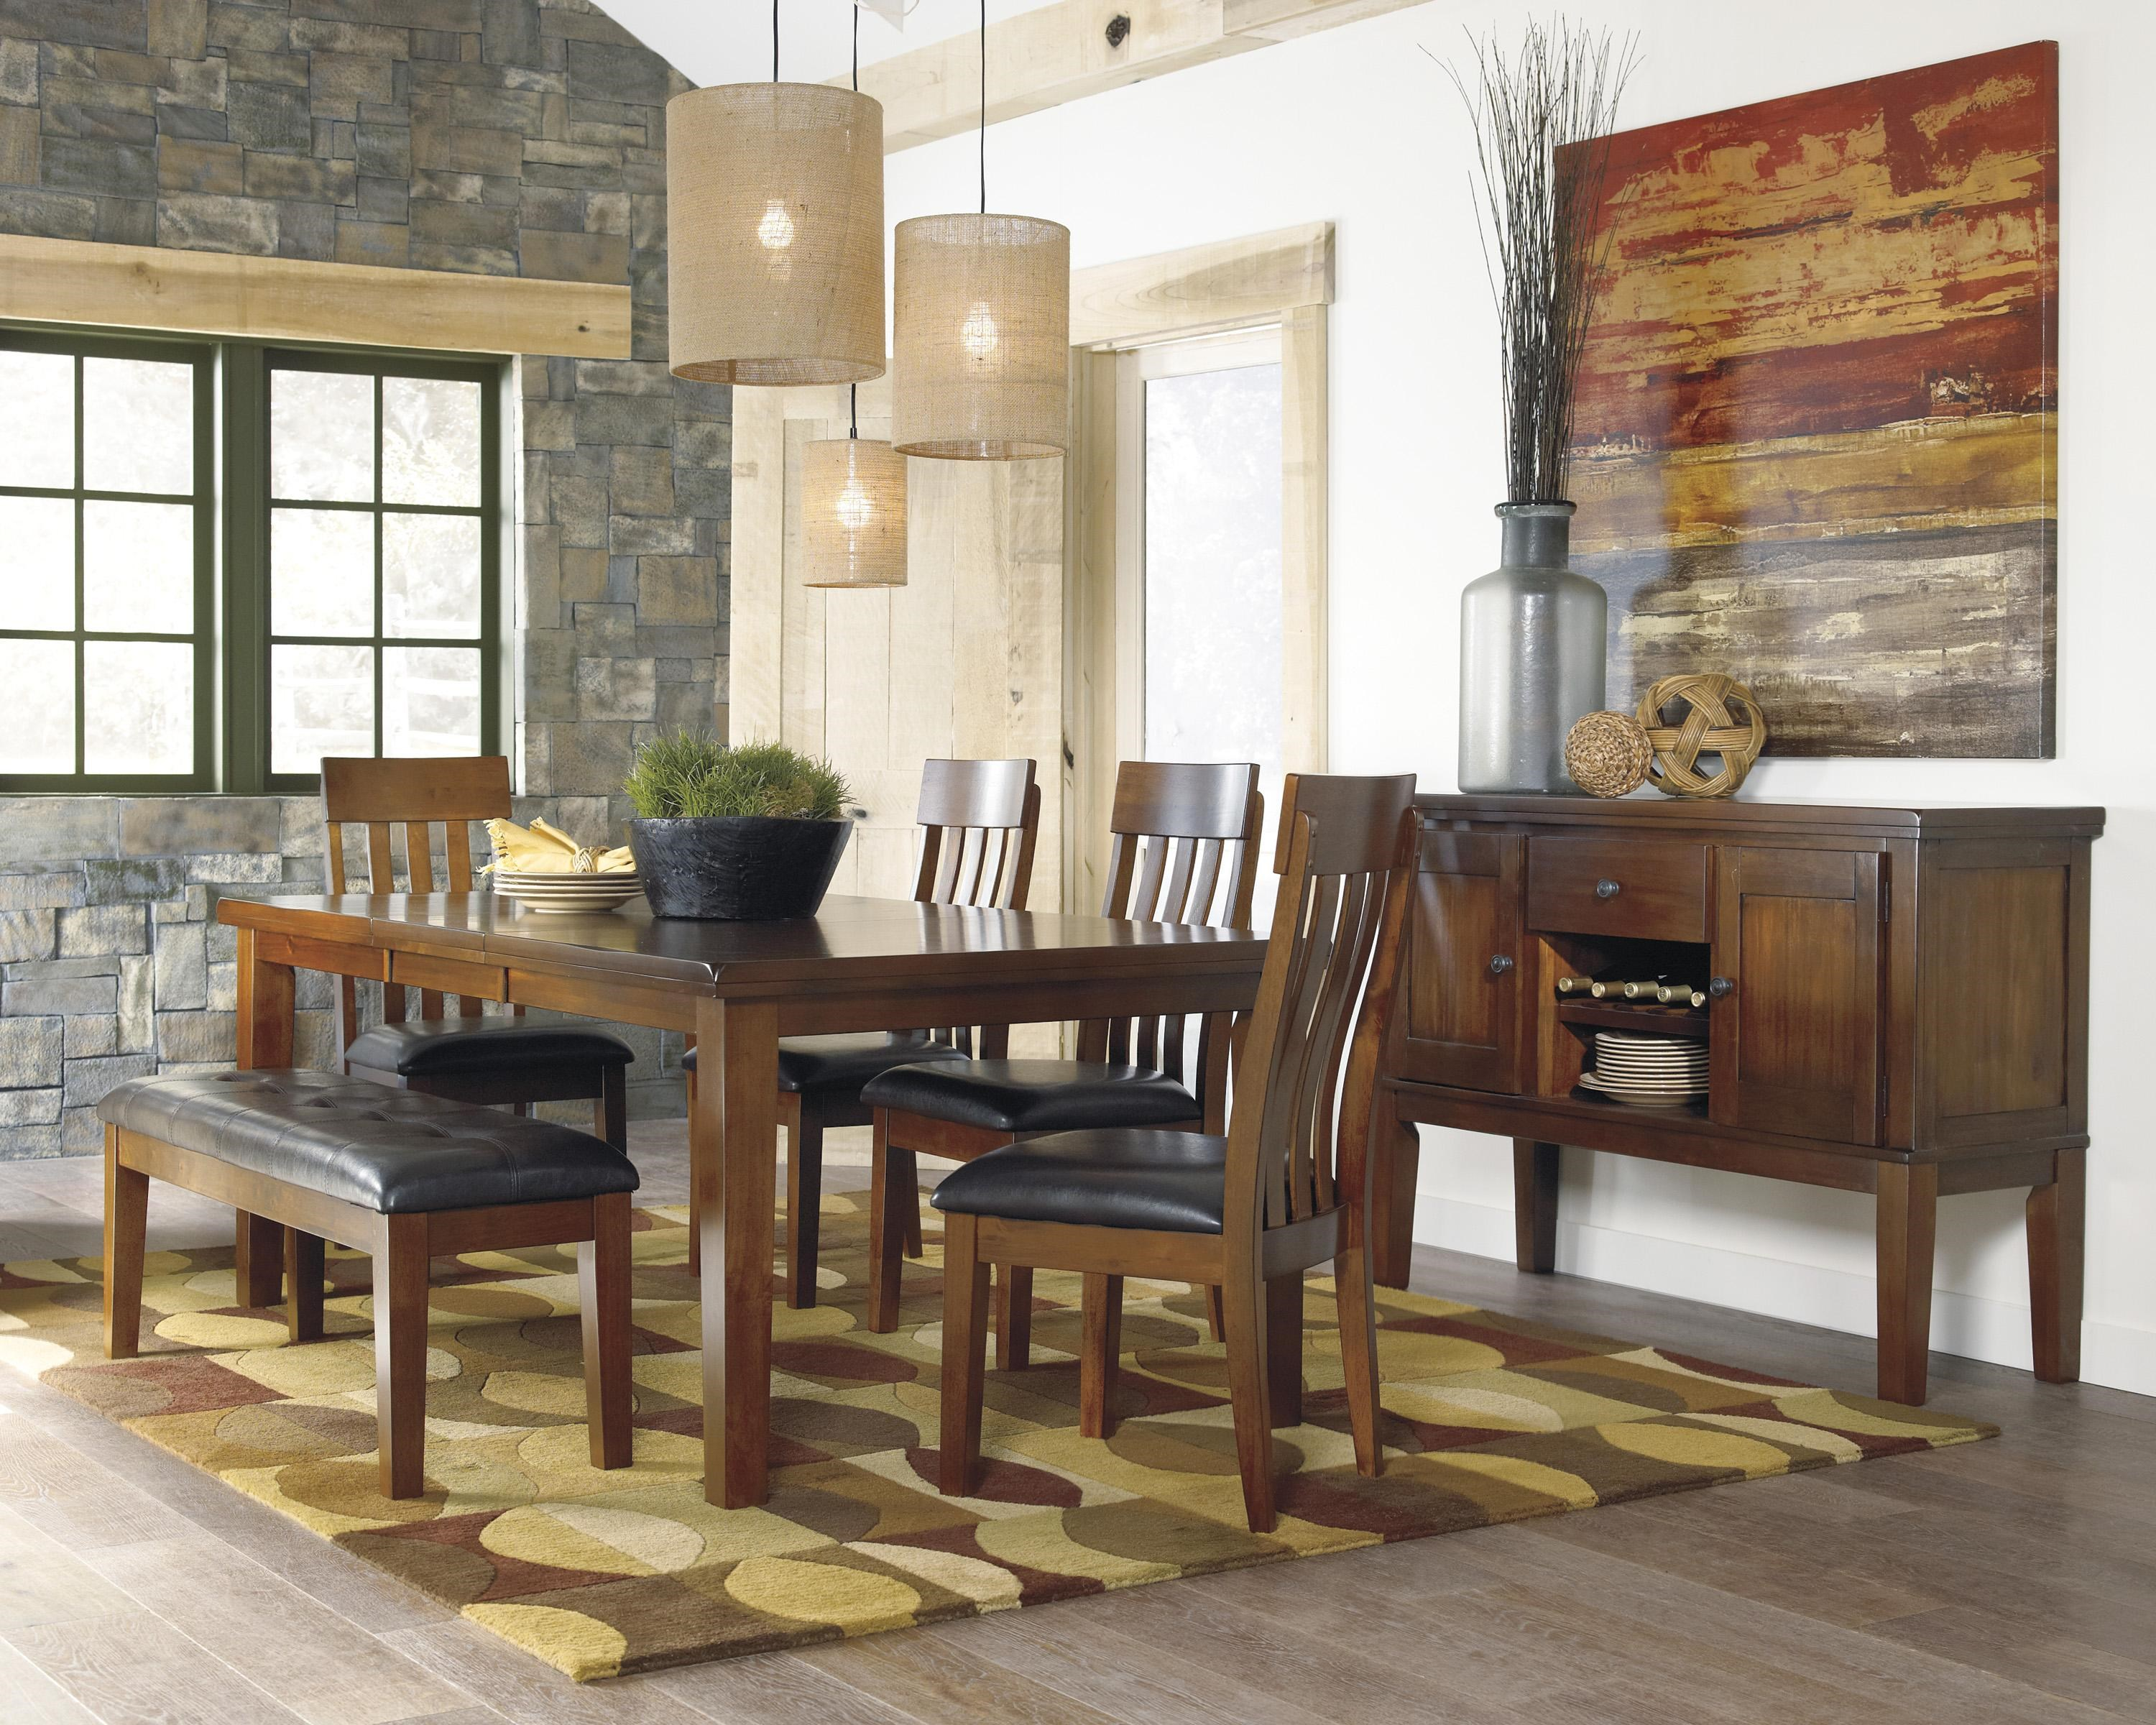 Signature Design by Ashley Ralene Casual Dining Room Group  : products2Fsignaturedesignbyashley2Fcolor2Fralene20 201195589344d59420dining20room20group206 b0jpgscalebothampwidth500ampheight500ampfsharpen25ampdown from www.wayside-furniture.com size 500 x 500 jpeg 59kB